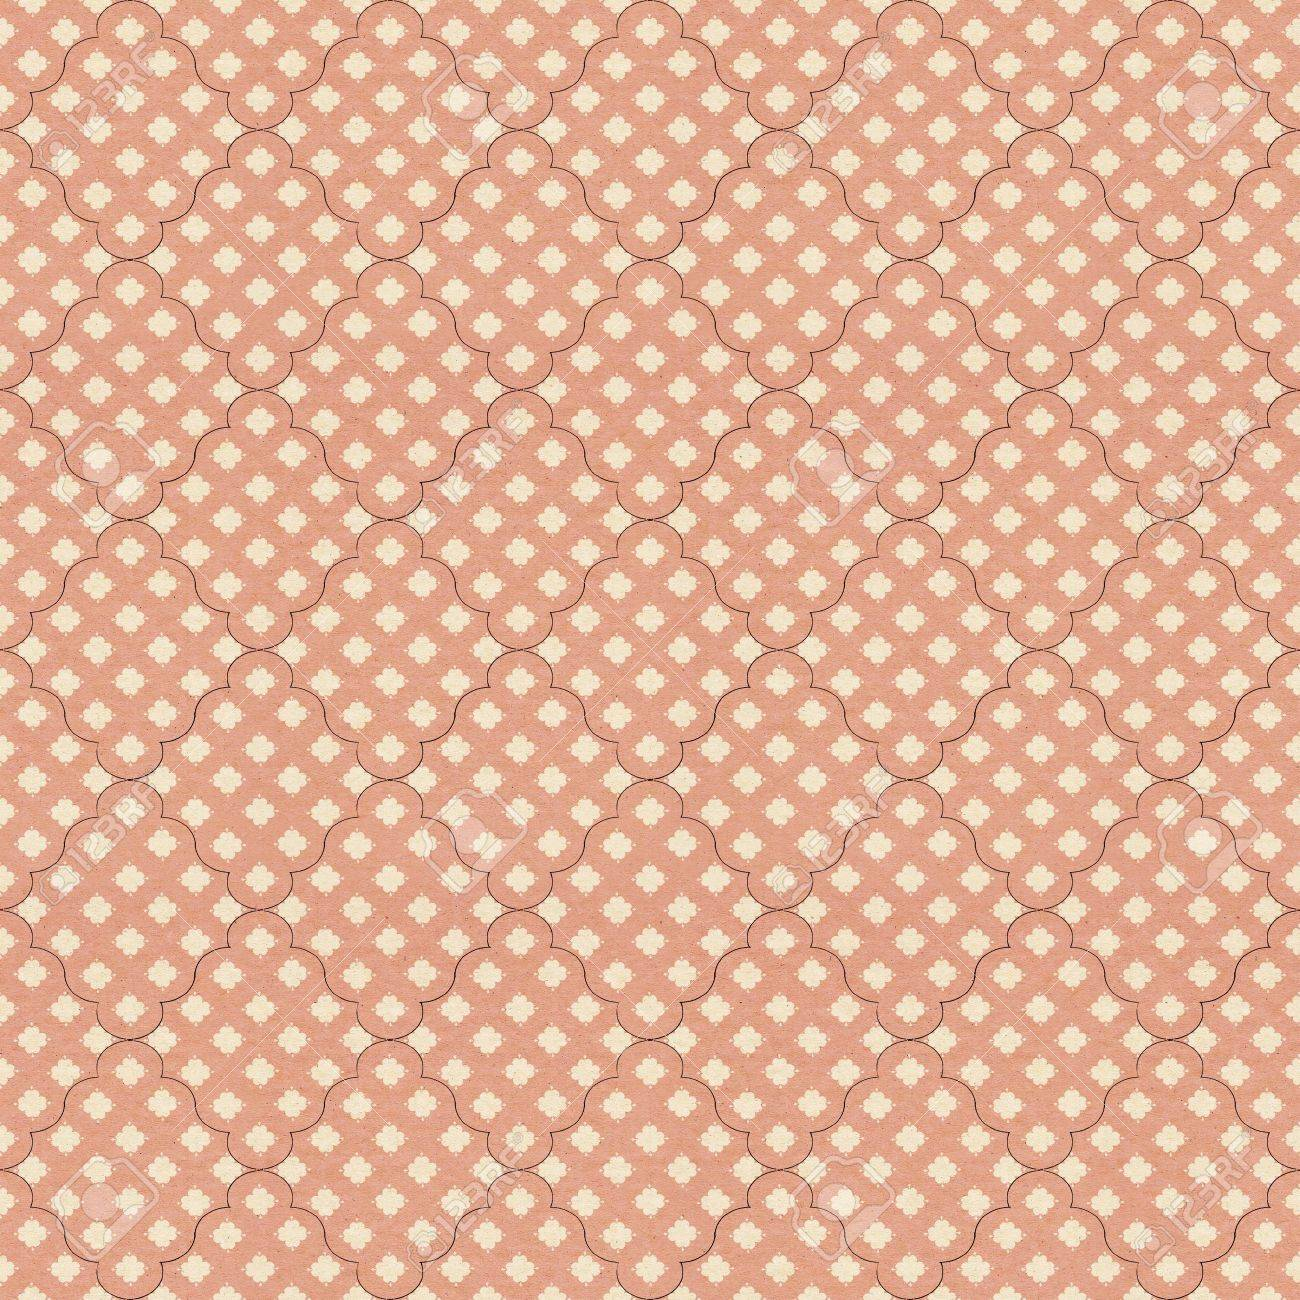 Vintage Pattern On Textured Paper Stock Photo Picture And Royalty